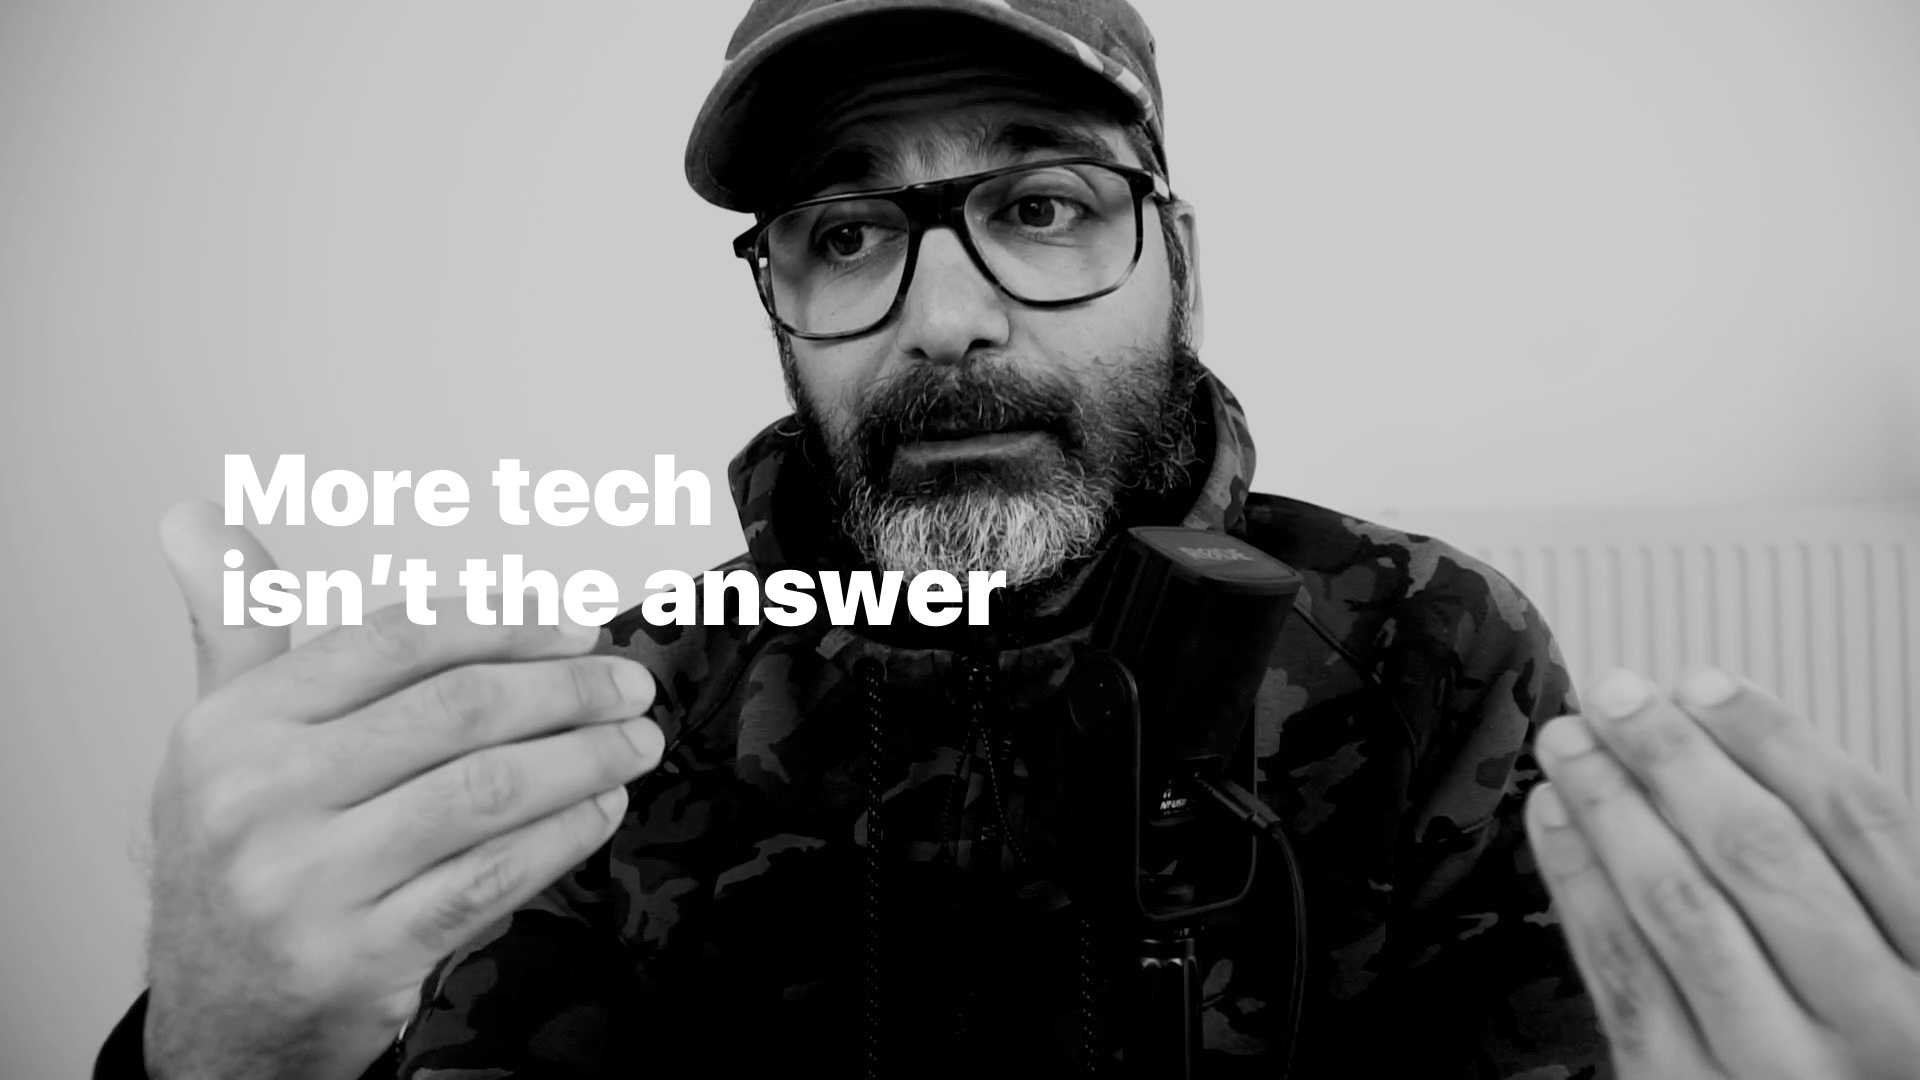 More tech isn't the answer